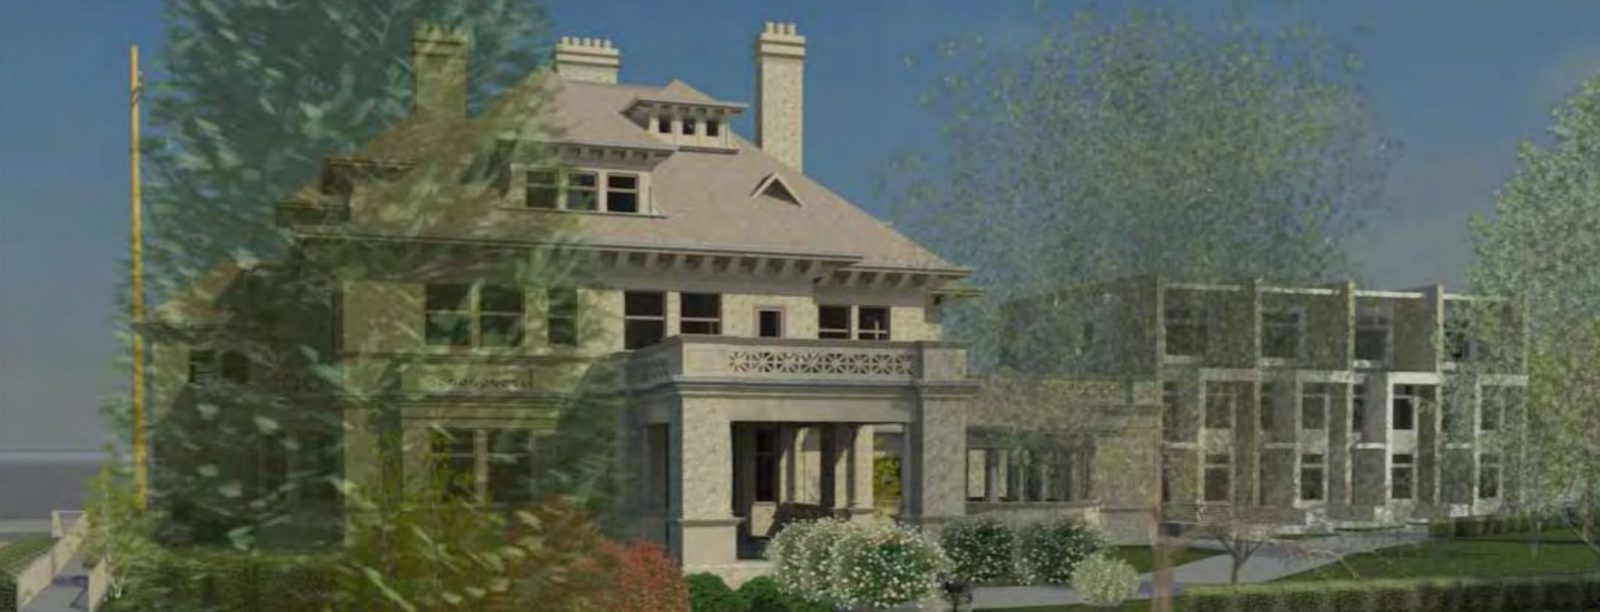 Iconic Gabriola House mansion to be converted into rental apartments